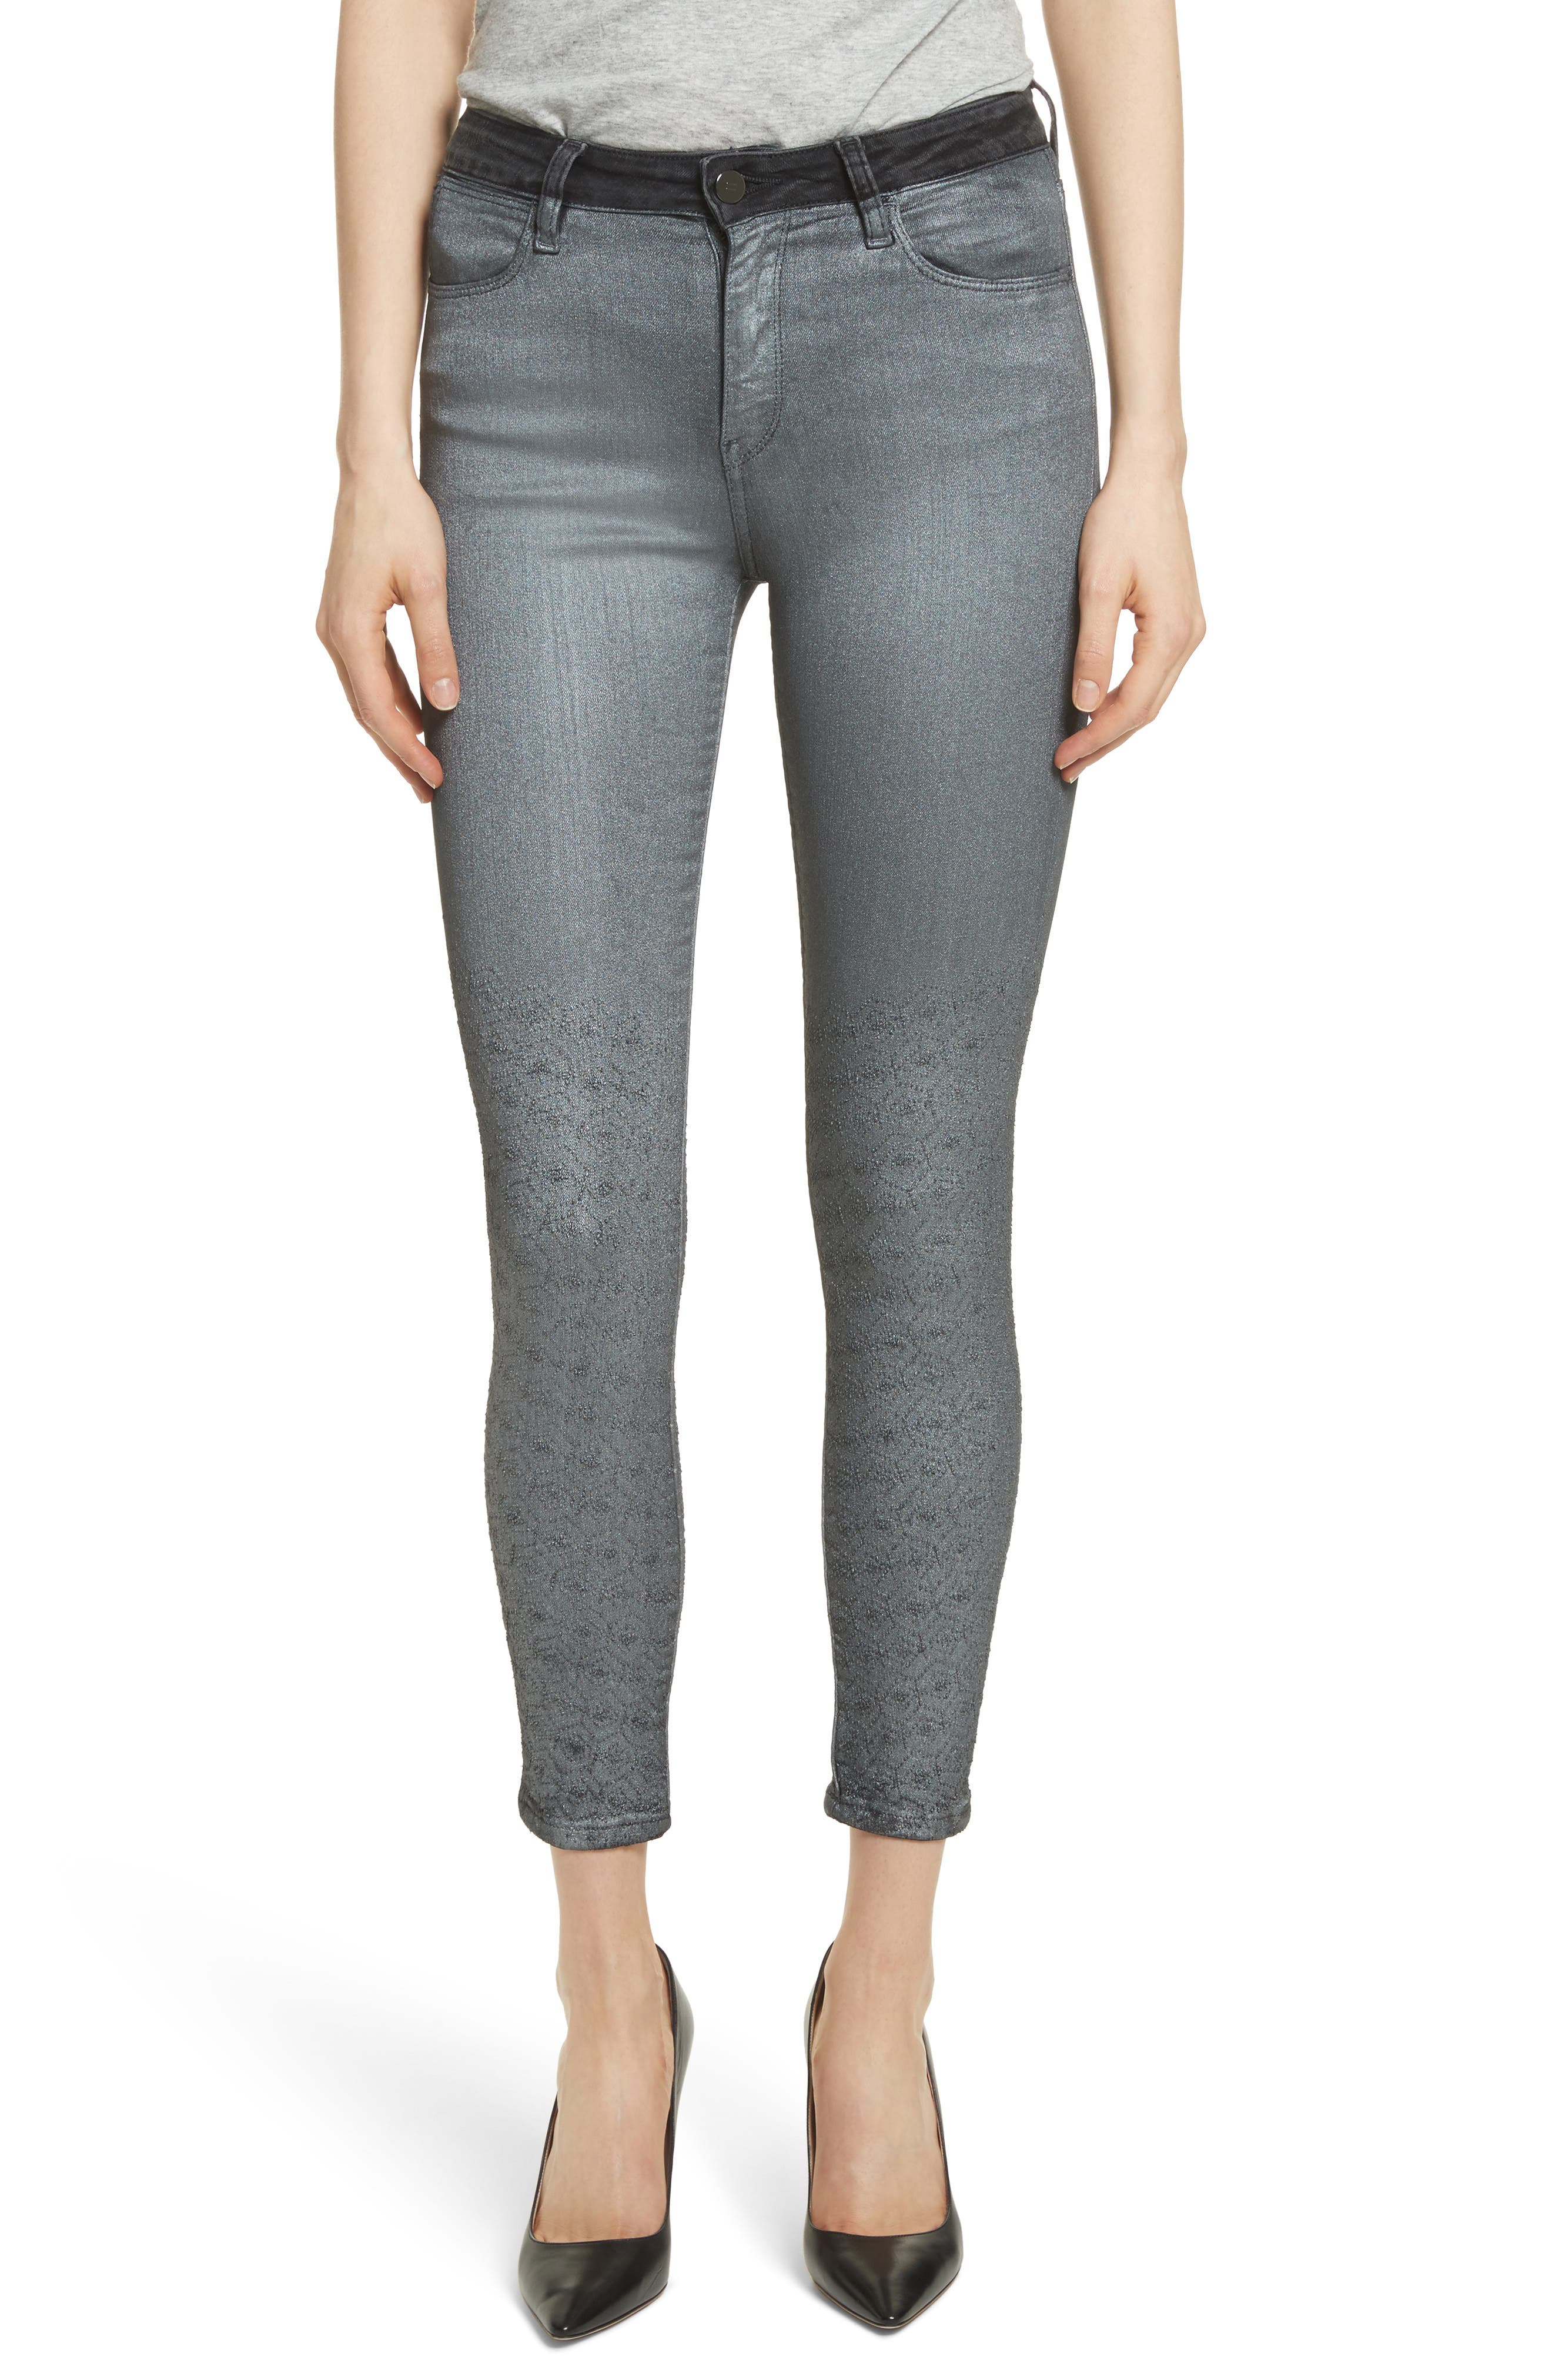 Reina Glitter Skinny Jeans,                         Main,                         color, 004